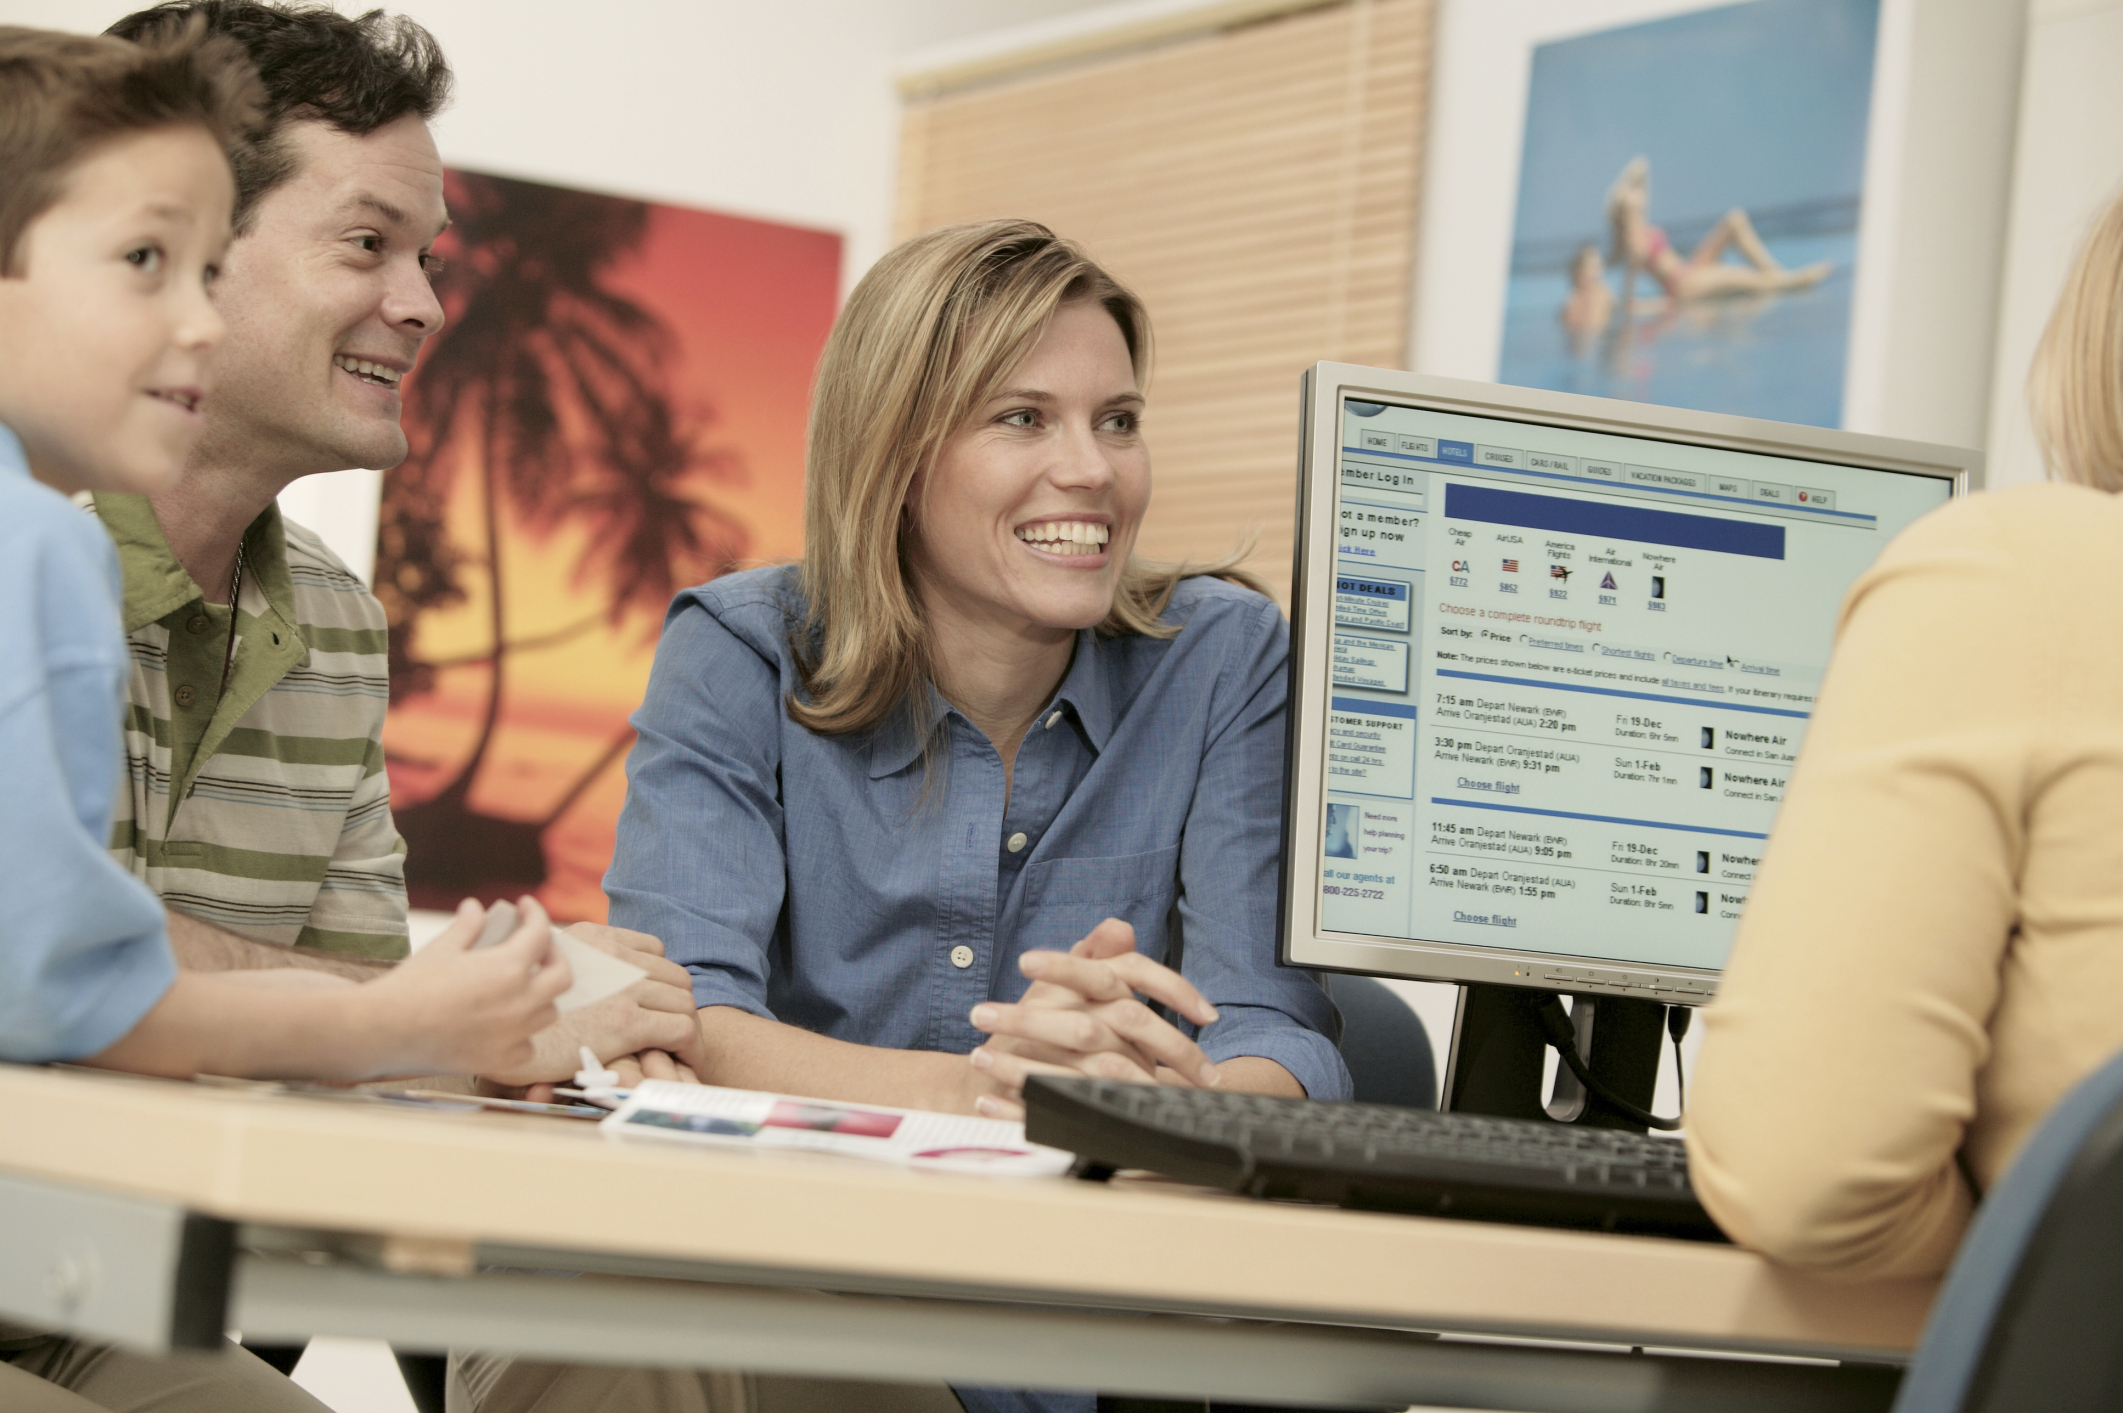 How to Use a Travel Agent IATA Number | USA Today